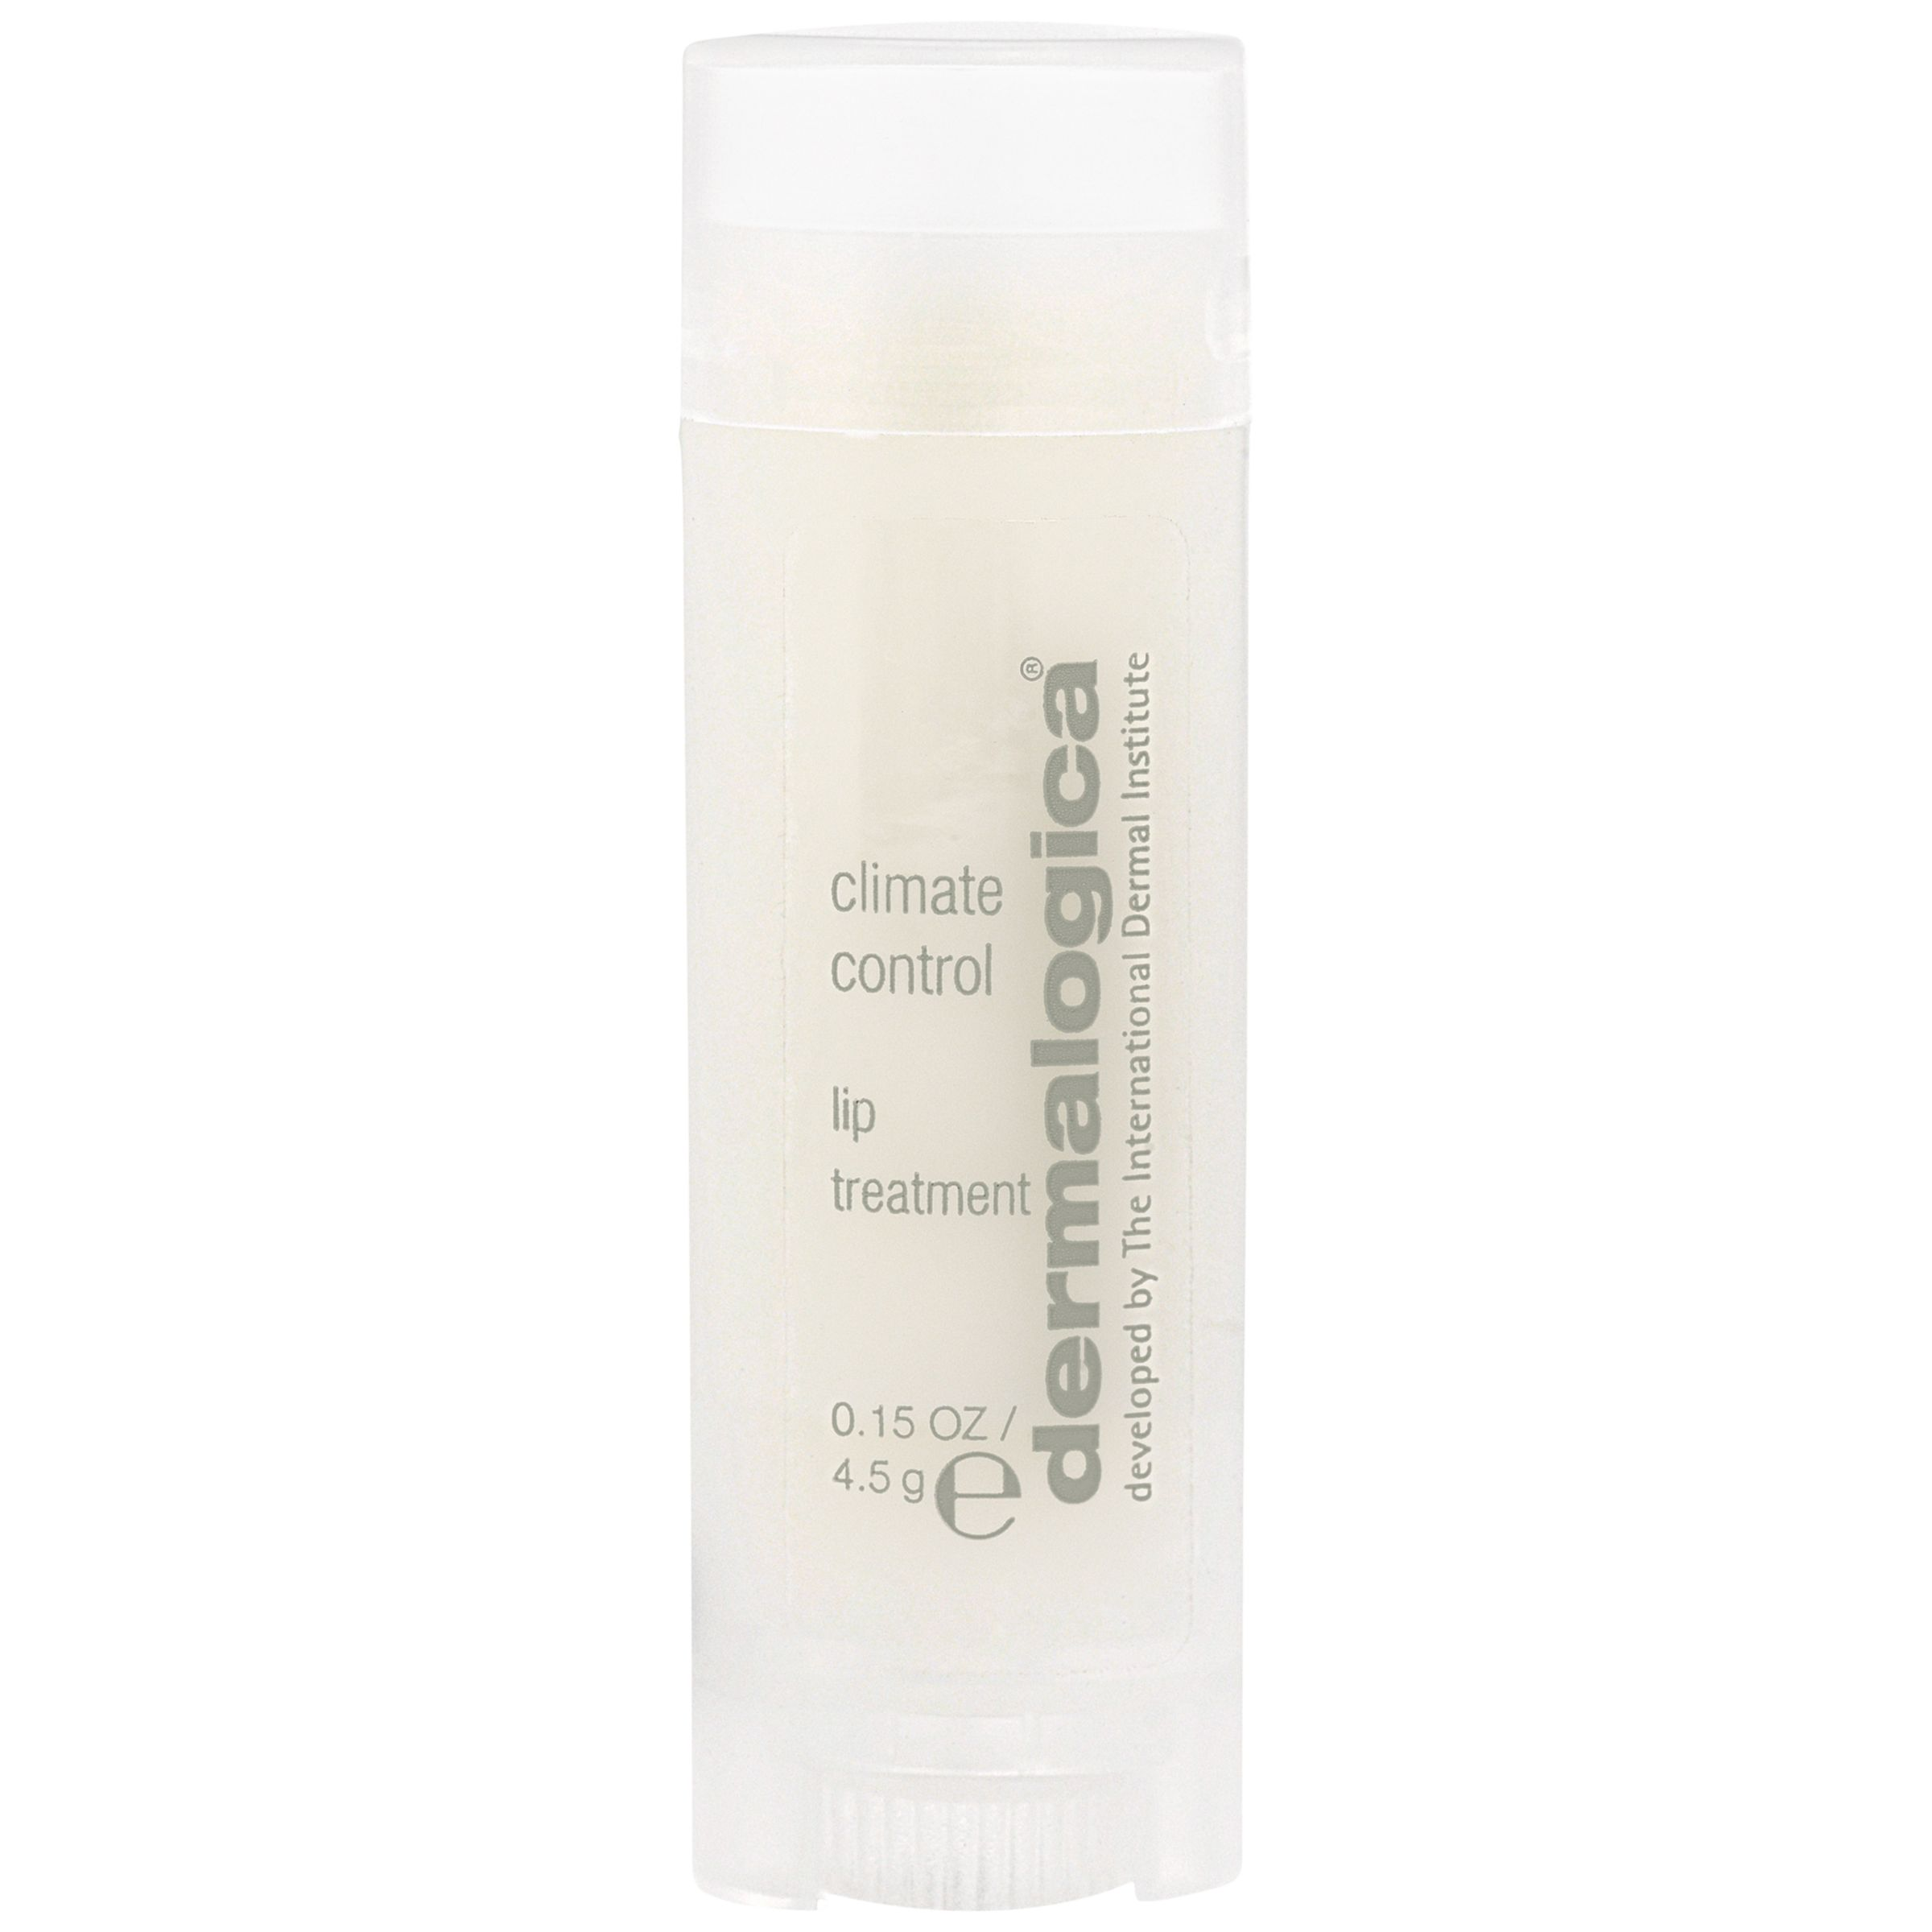 dermalogica climate control lip treatment 4.5g